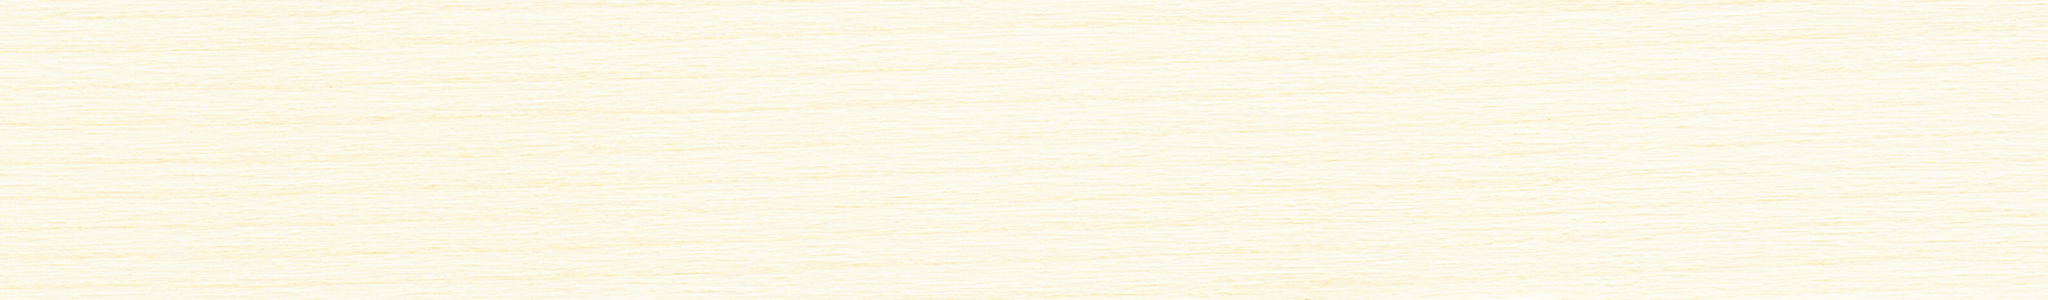 HD 76120 Veneer Edge European Maple Preglued